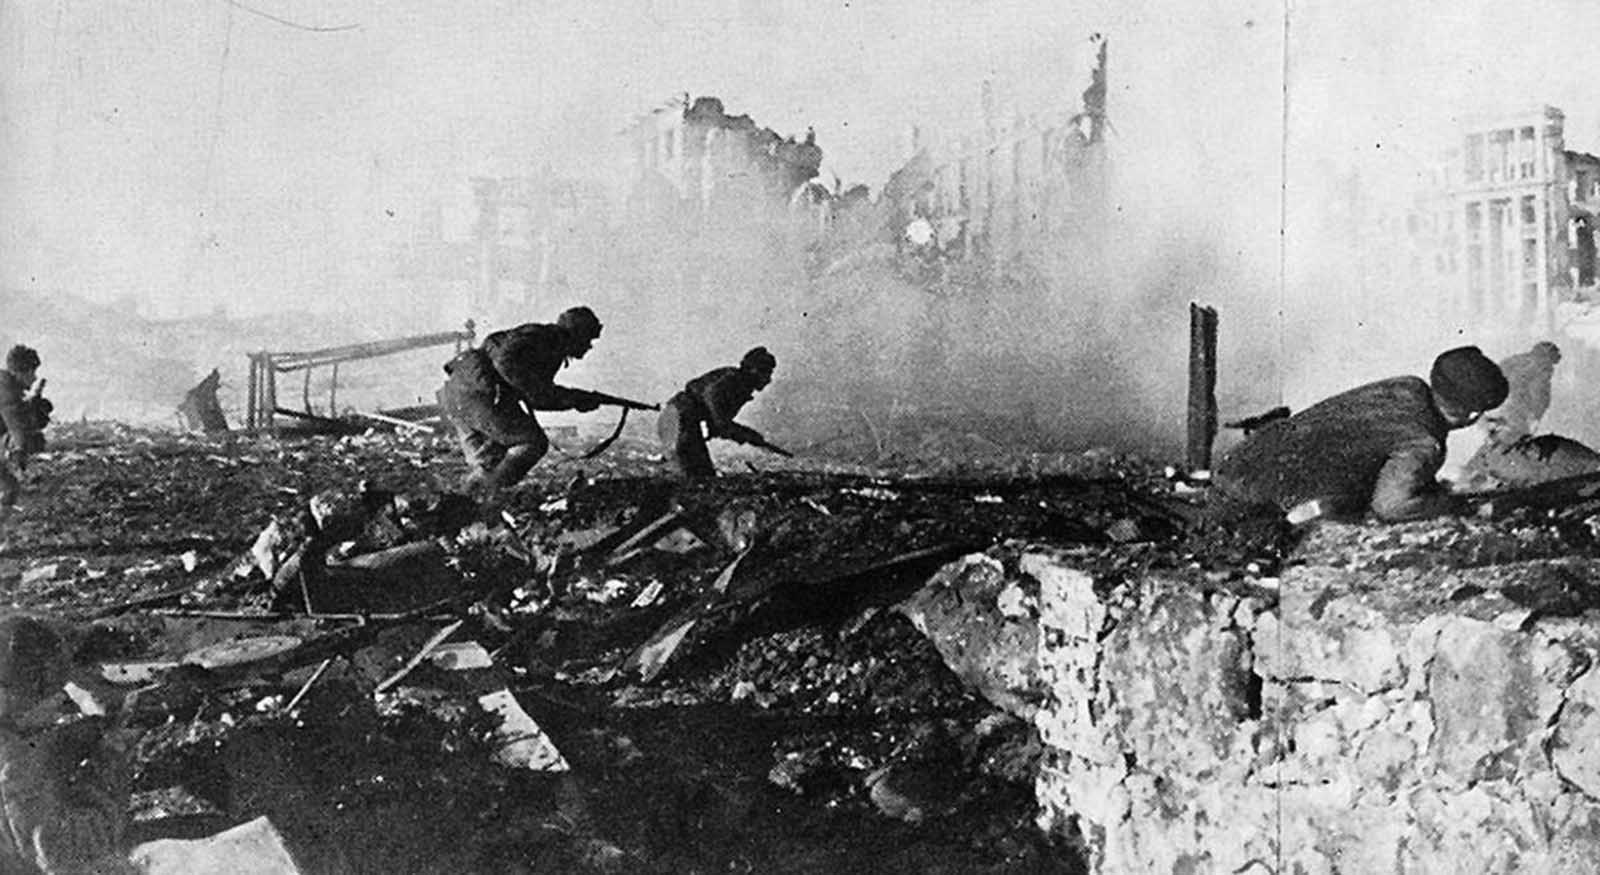 Sometime in the Autumn of 1942, Soviet soldiers advance through the rubble of Stalingrad.